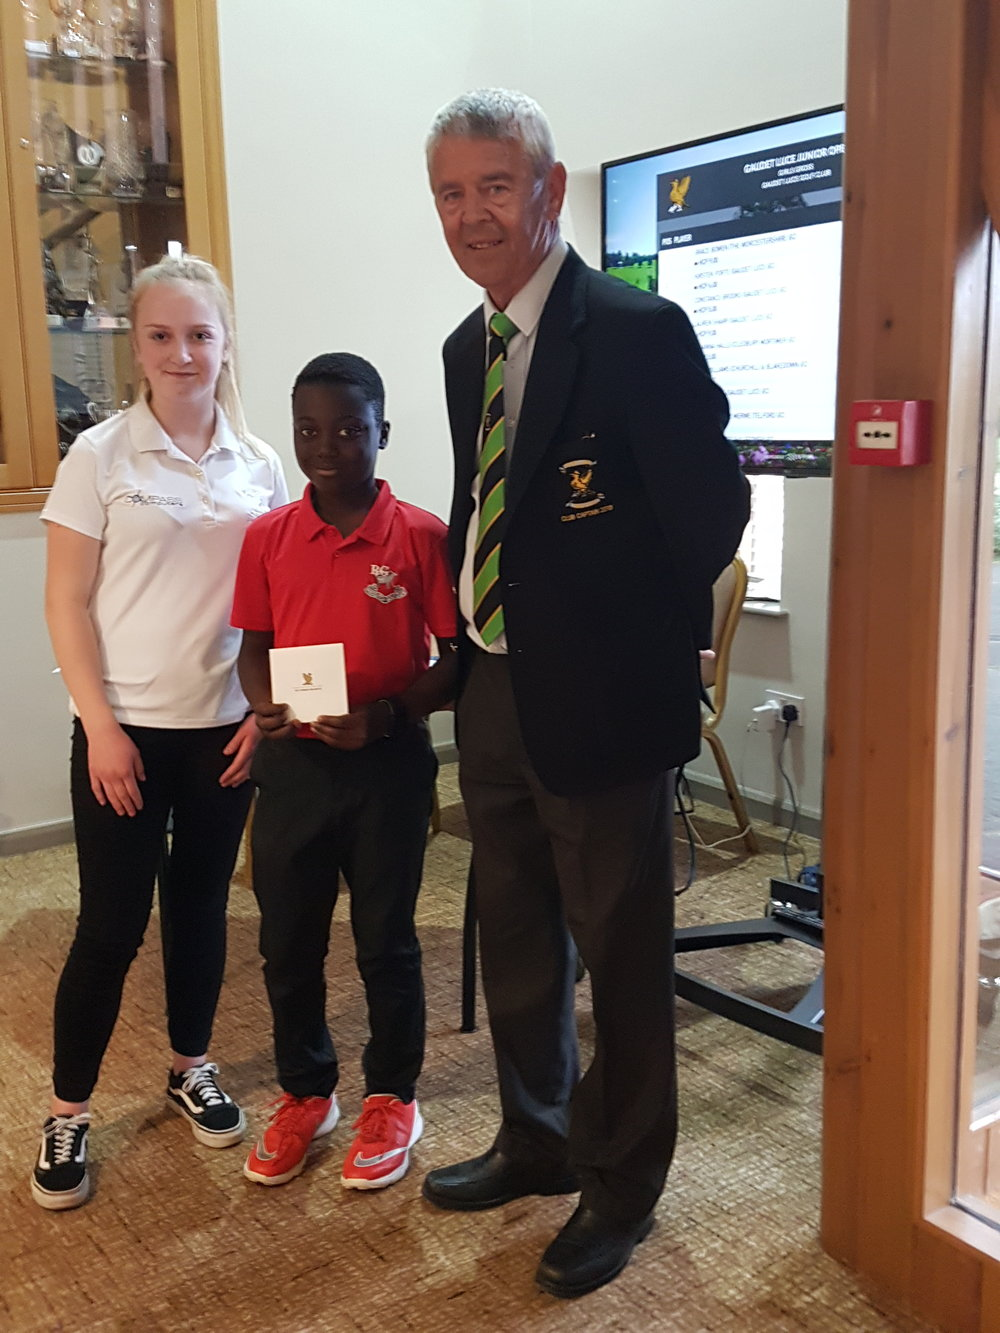 Copy of 2018 Runner-up Junior Open 'Daily Telelgraph' Gaudet Luce GC